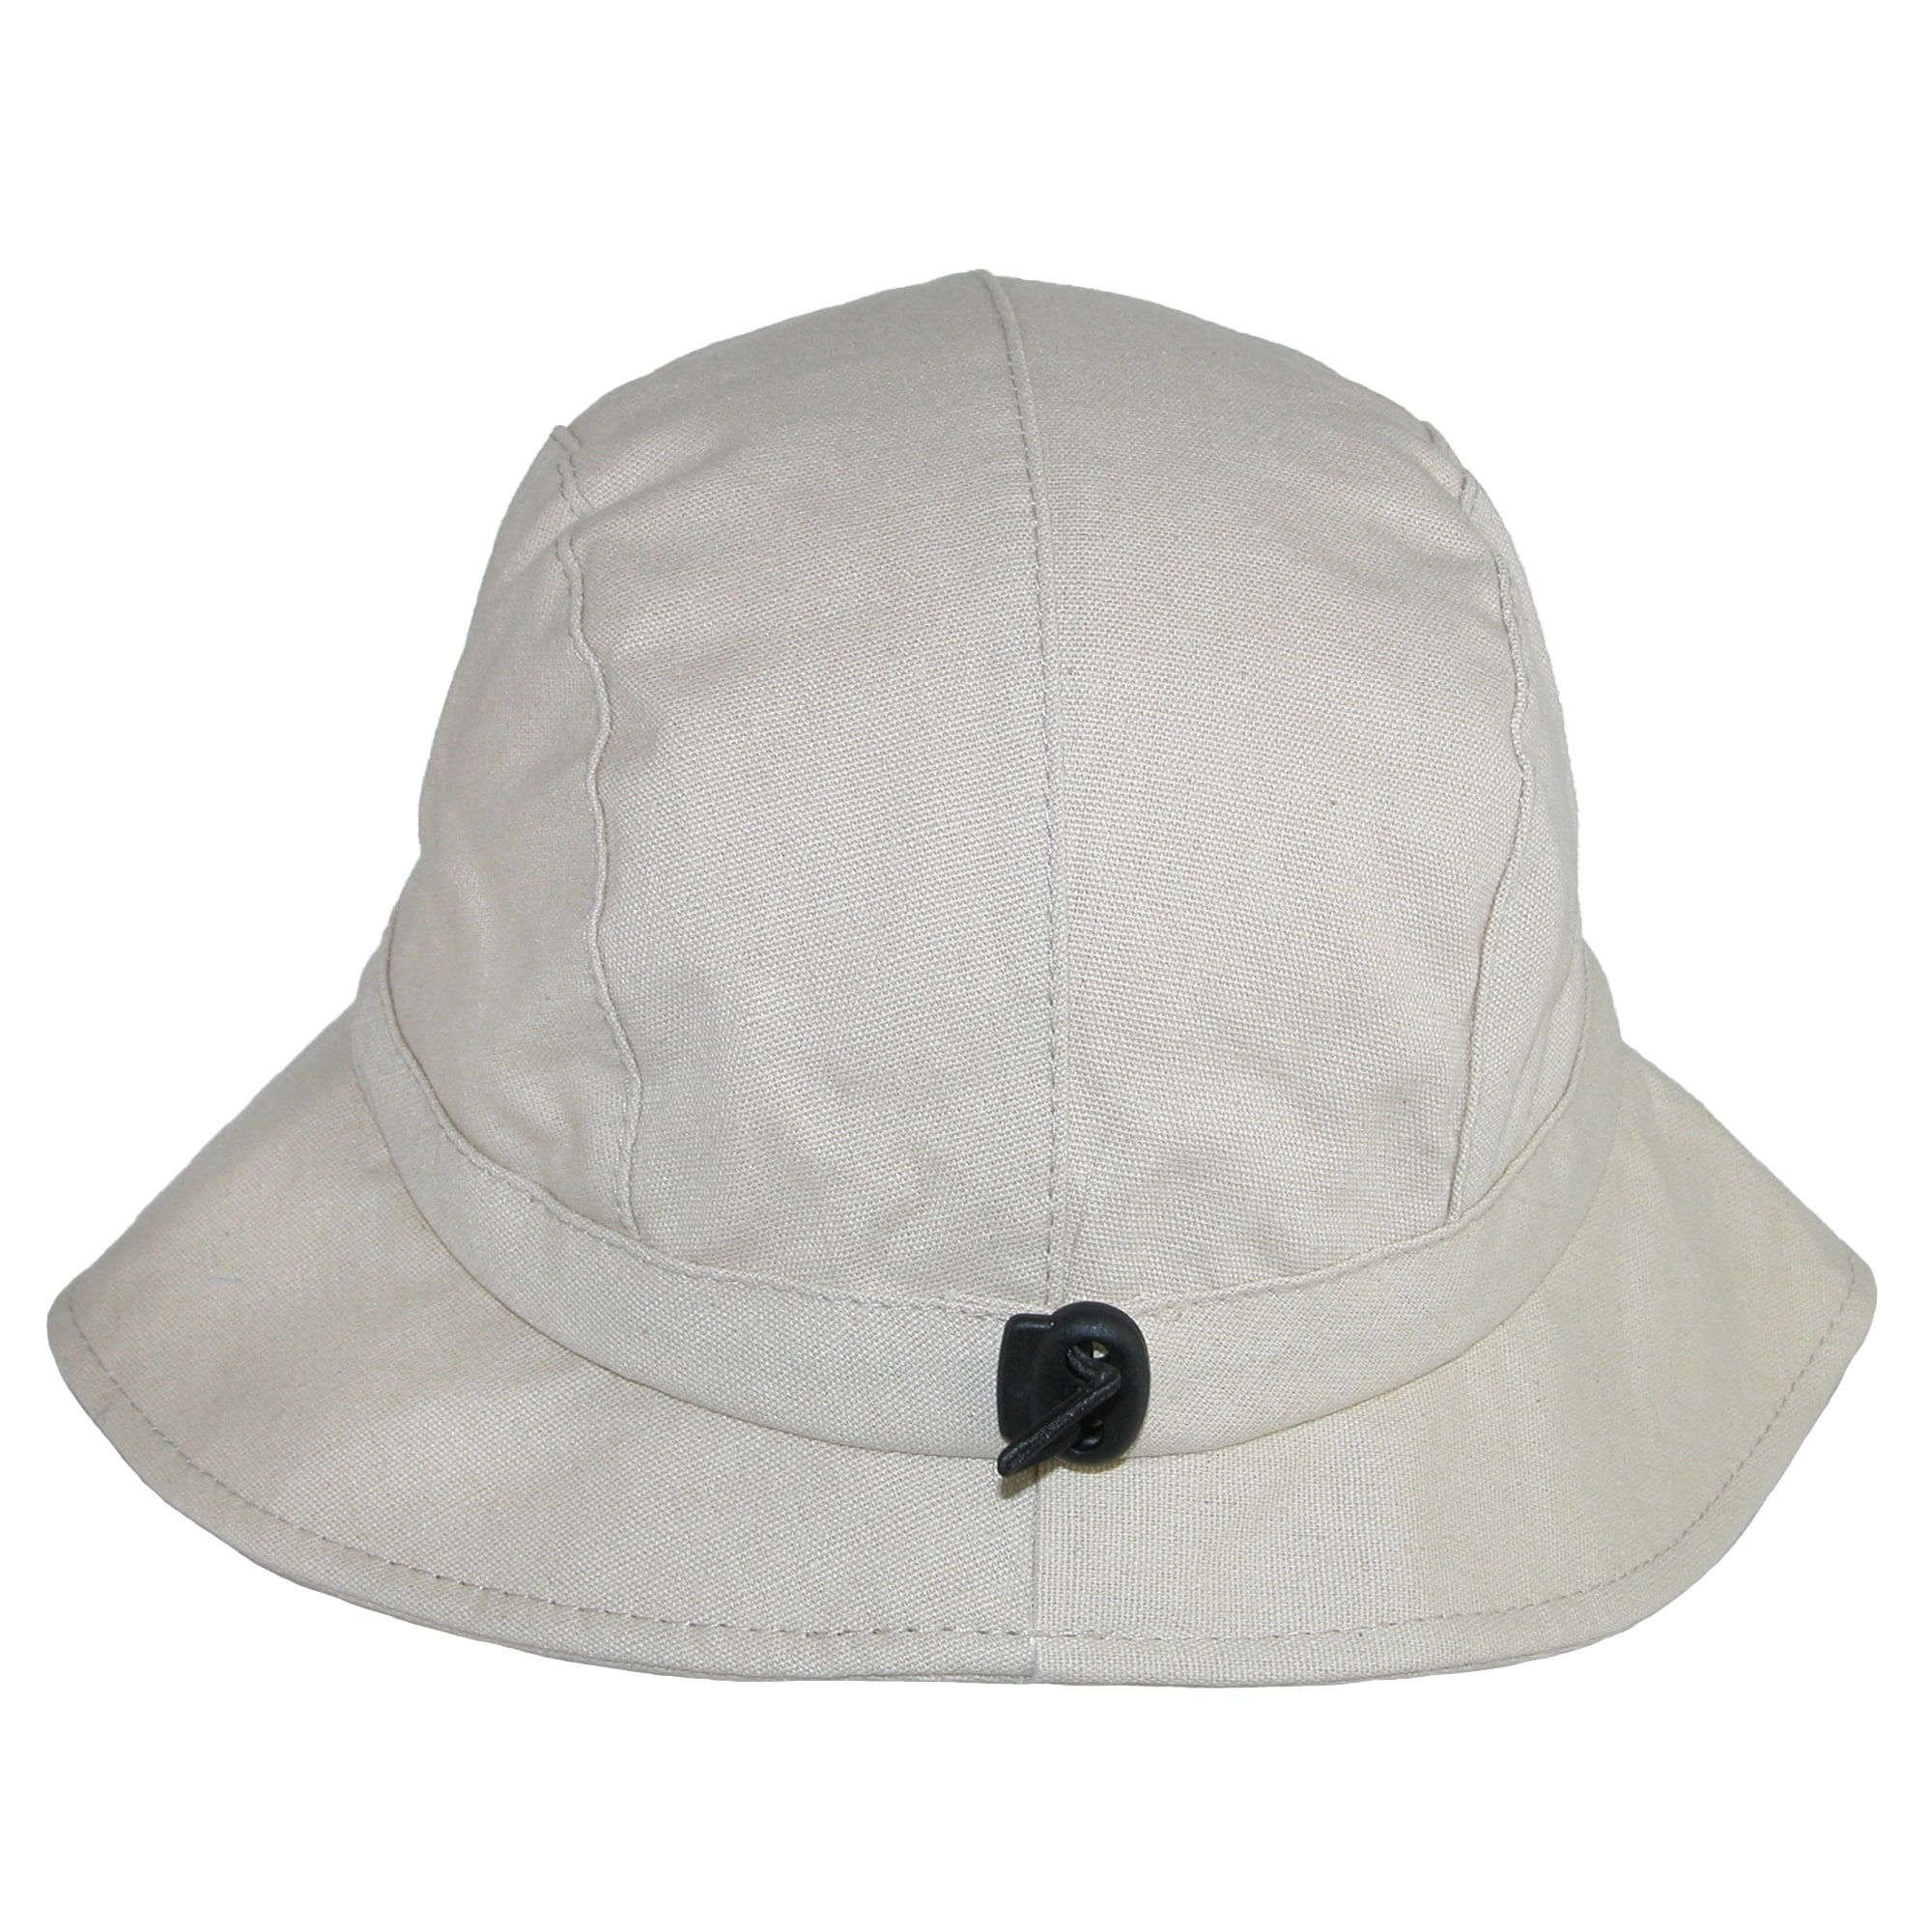 bf0e7f734a479 Shop Sun N Sand Women s Cotton Packable Facesaver Hat with Adjustable  Toggle - Ships To Canada - Overstock - 20499414